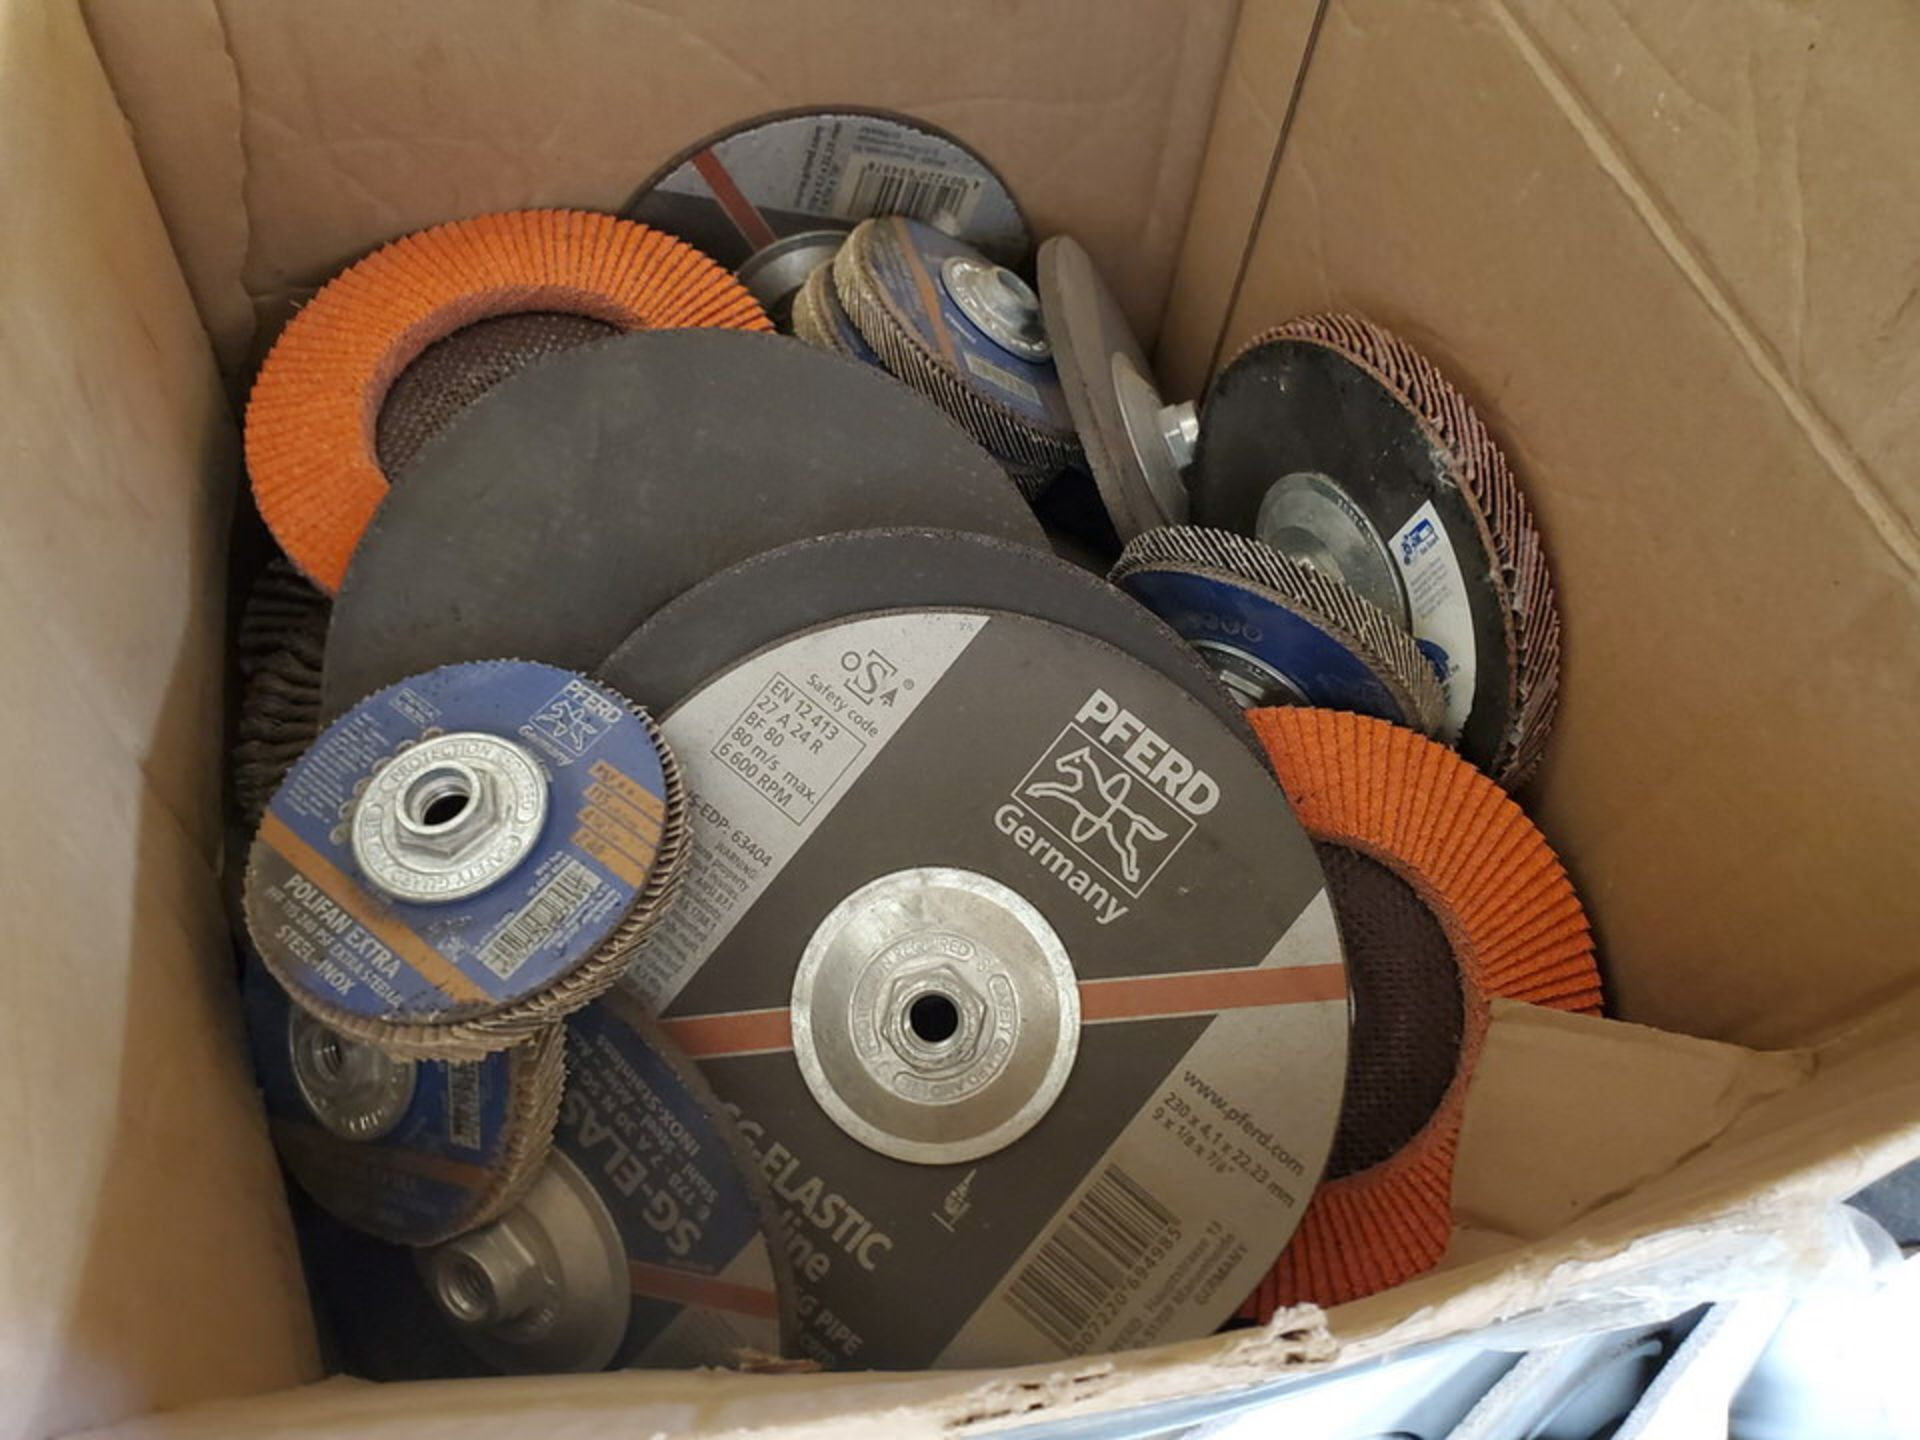 Radnor, LE Welding Accessories To Include But Not Limitied To: Grinding, Cutting & Flap Discs, - Image 21 of 24